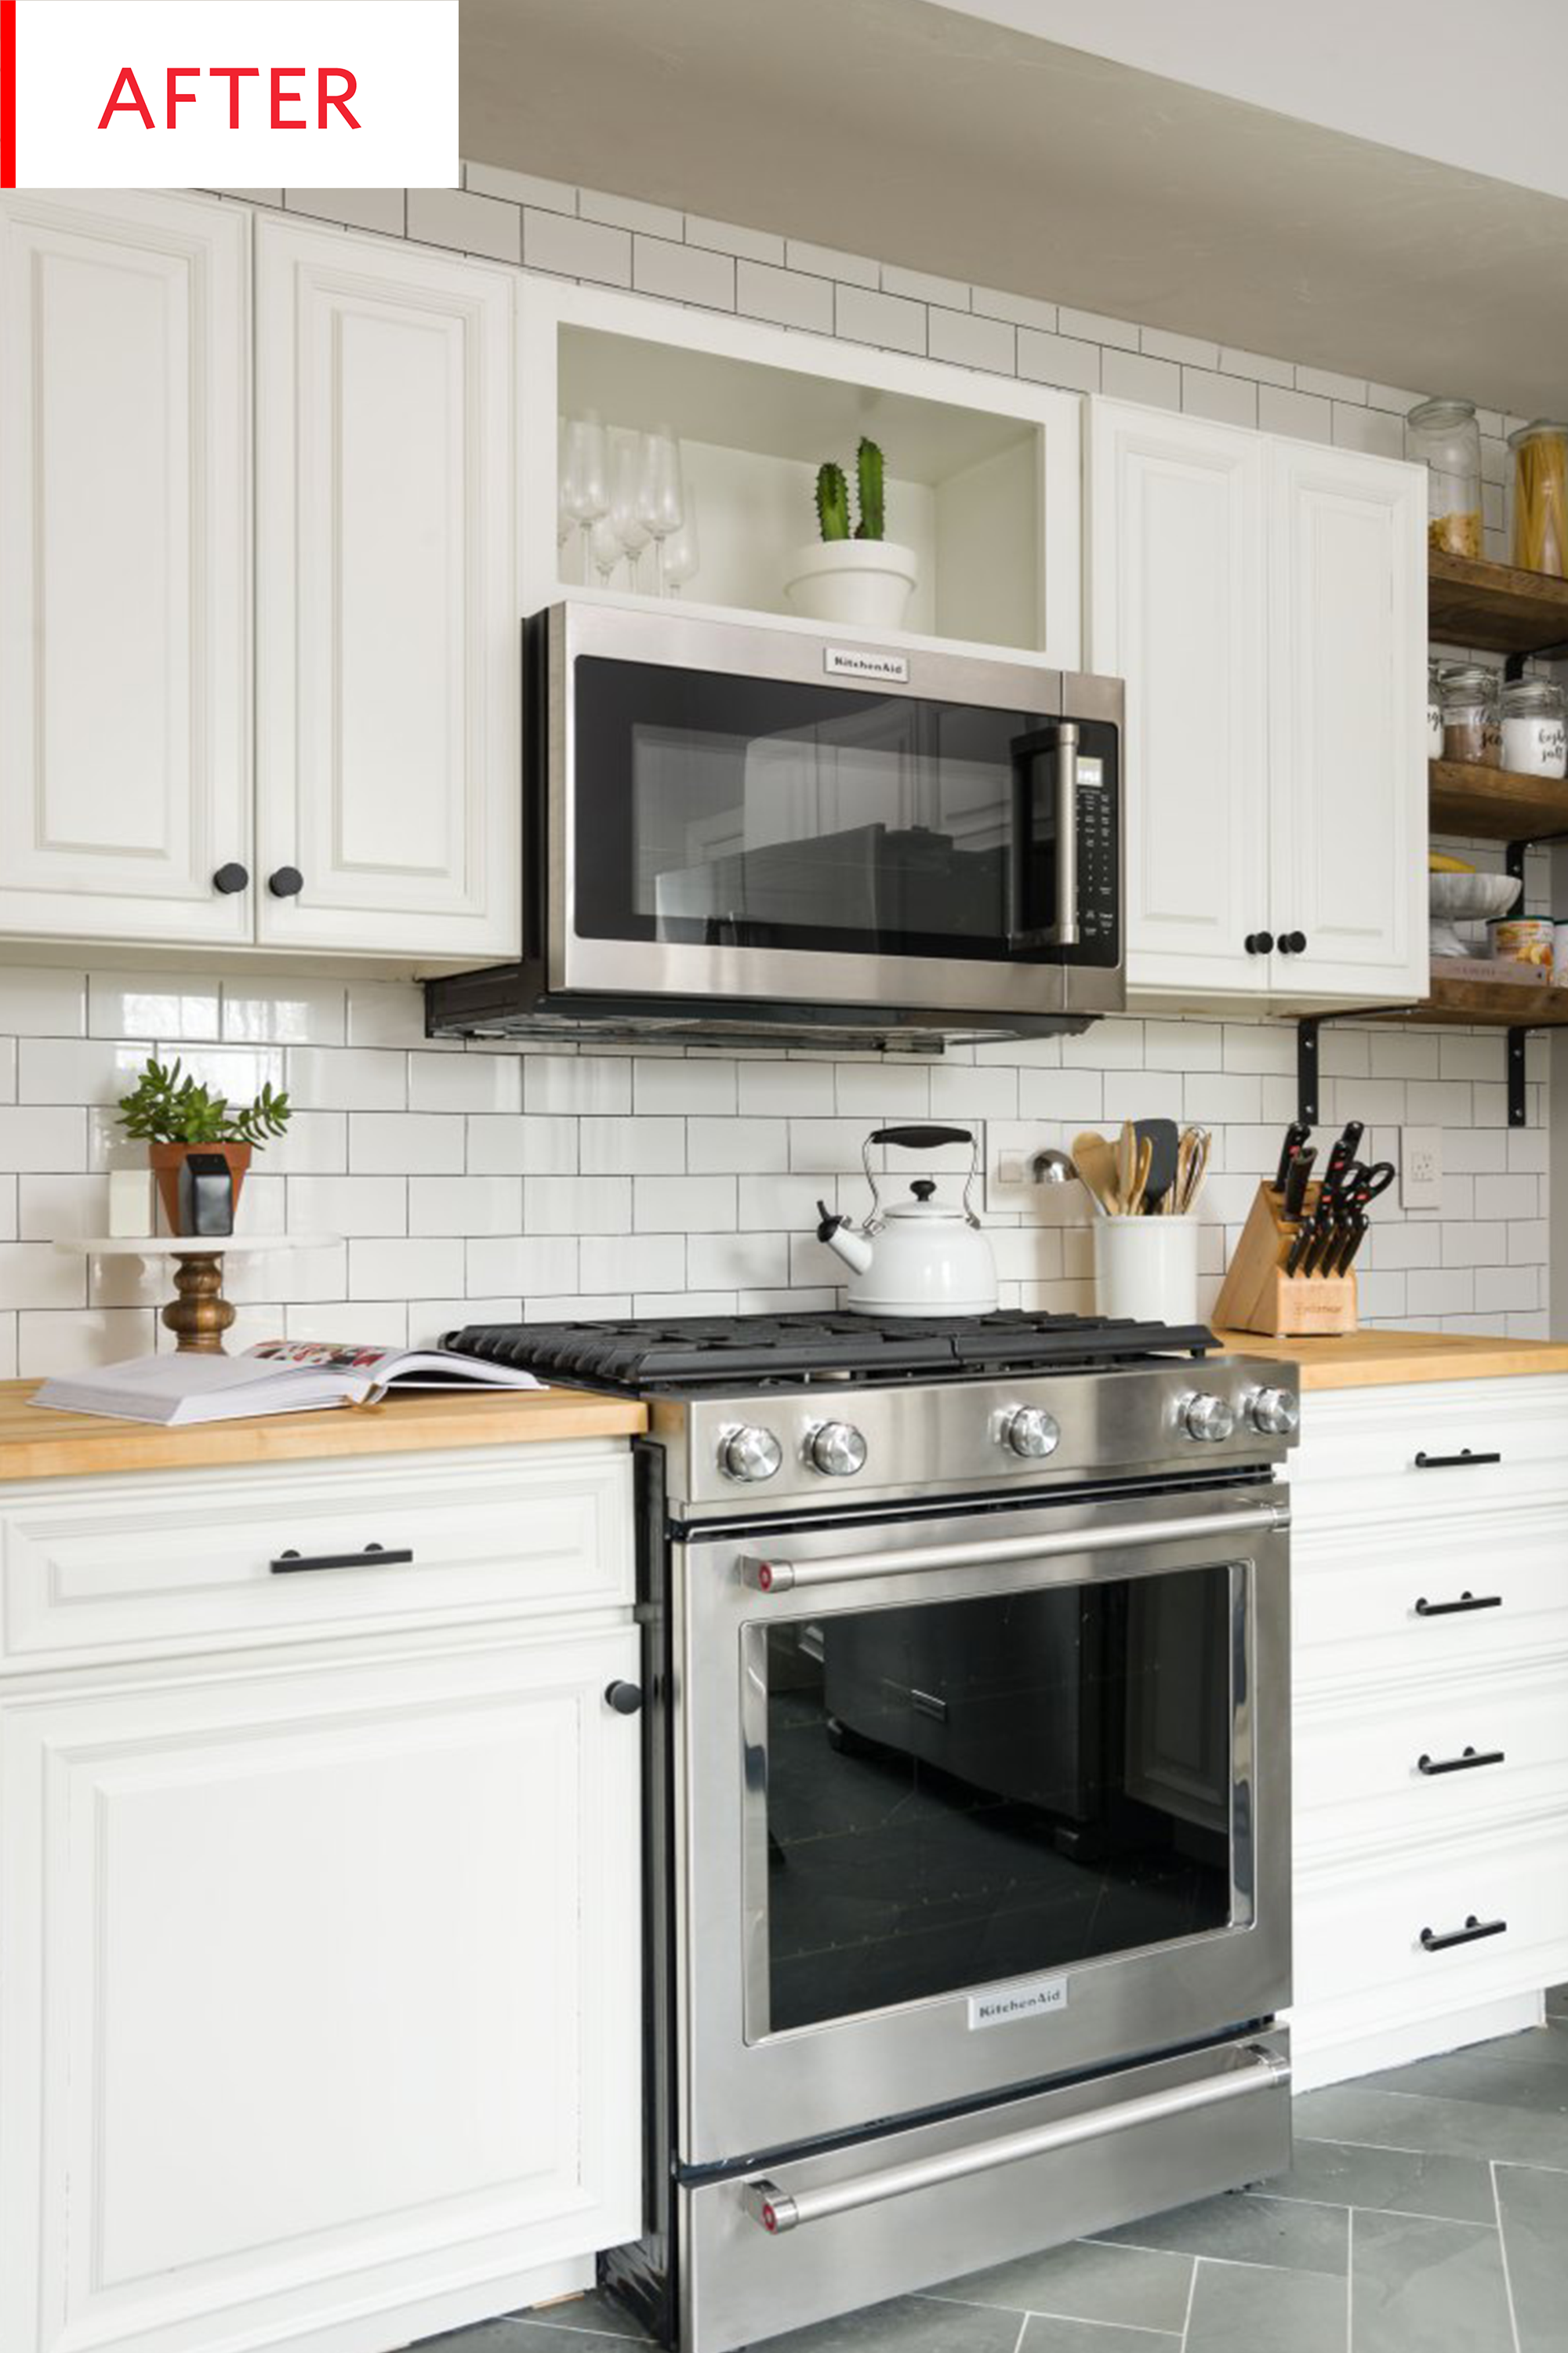 Before And After This Kitchen Was Renovated For Resale Kitchen Cabinet Remodel Old Kitchen Cabinets Kitchen Remodel